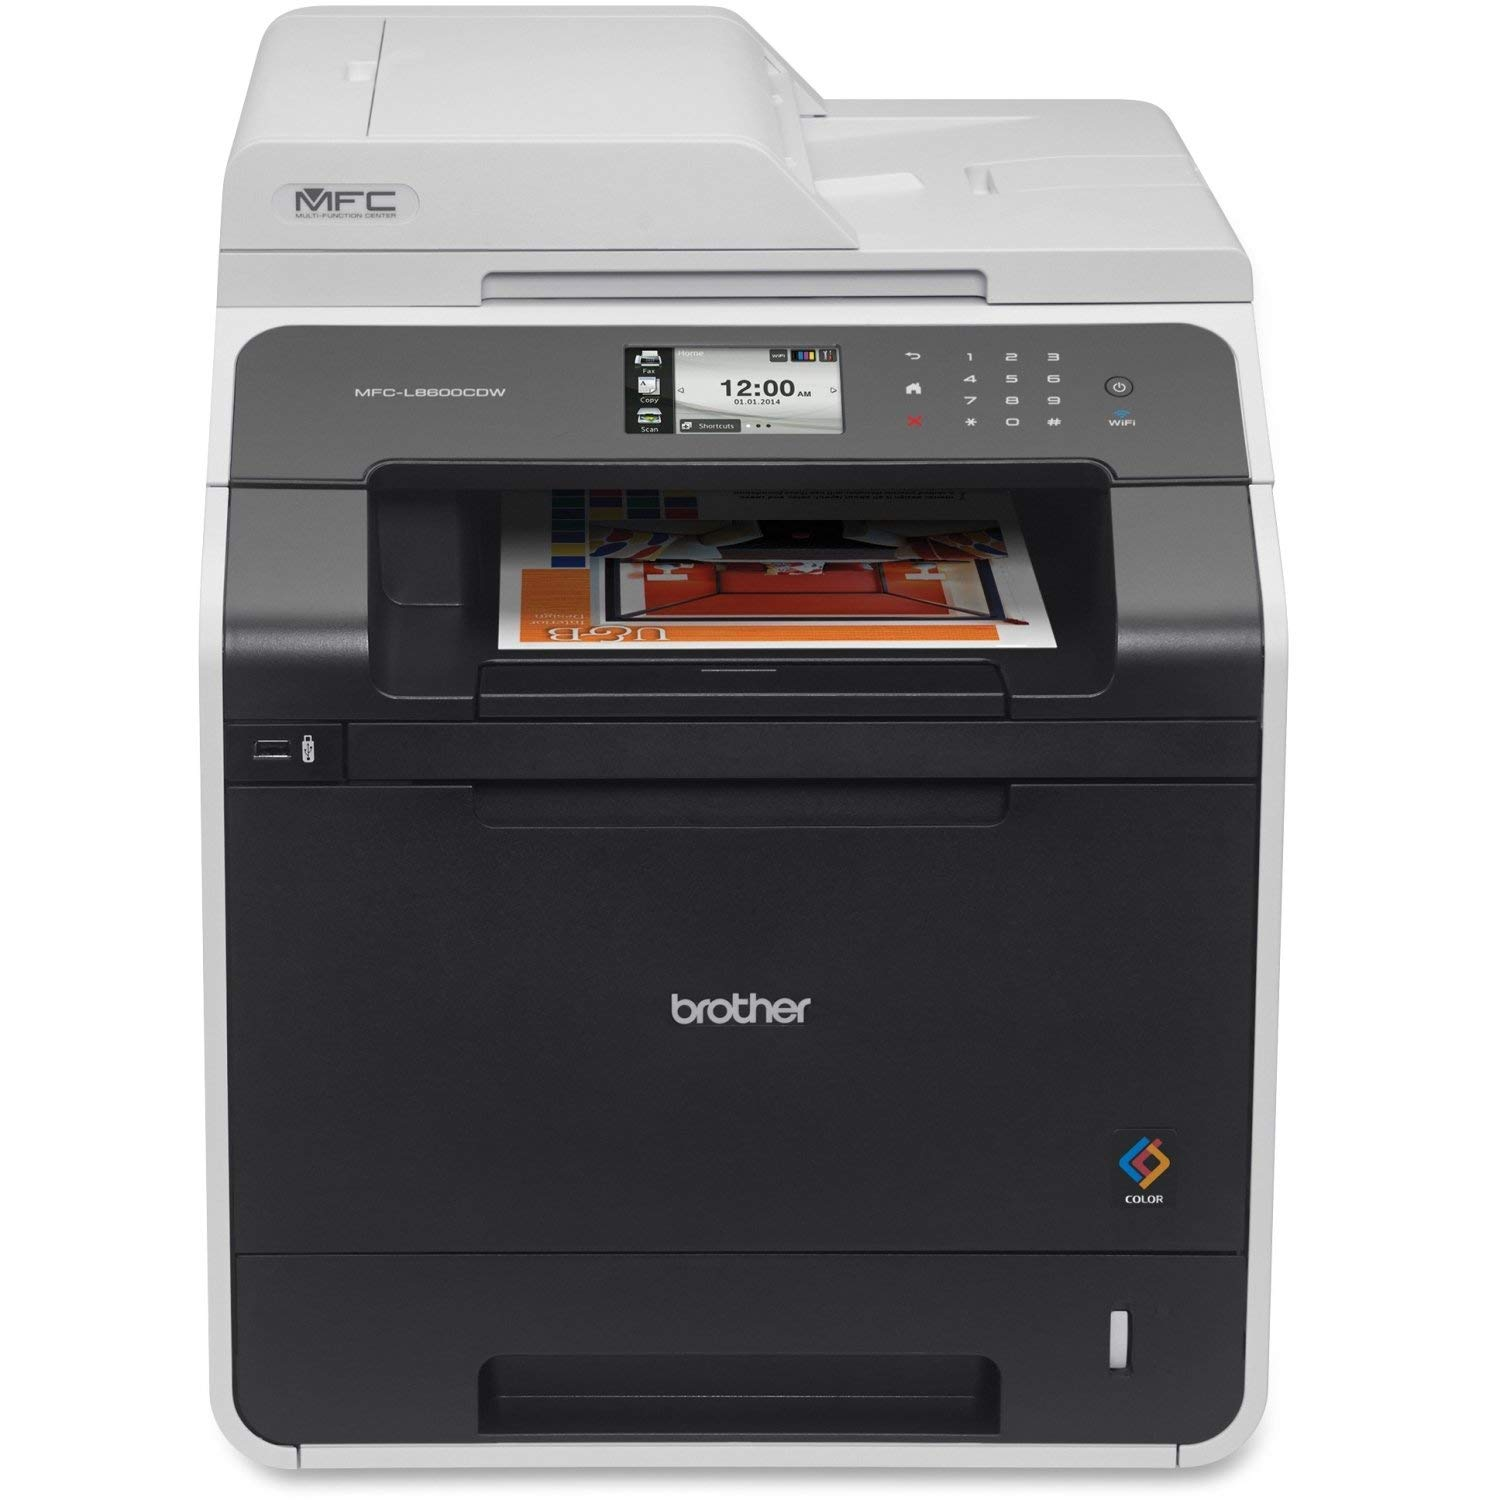 brother dcp 7055 scanner driver windows 10